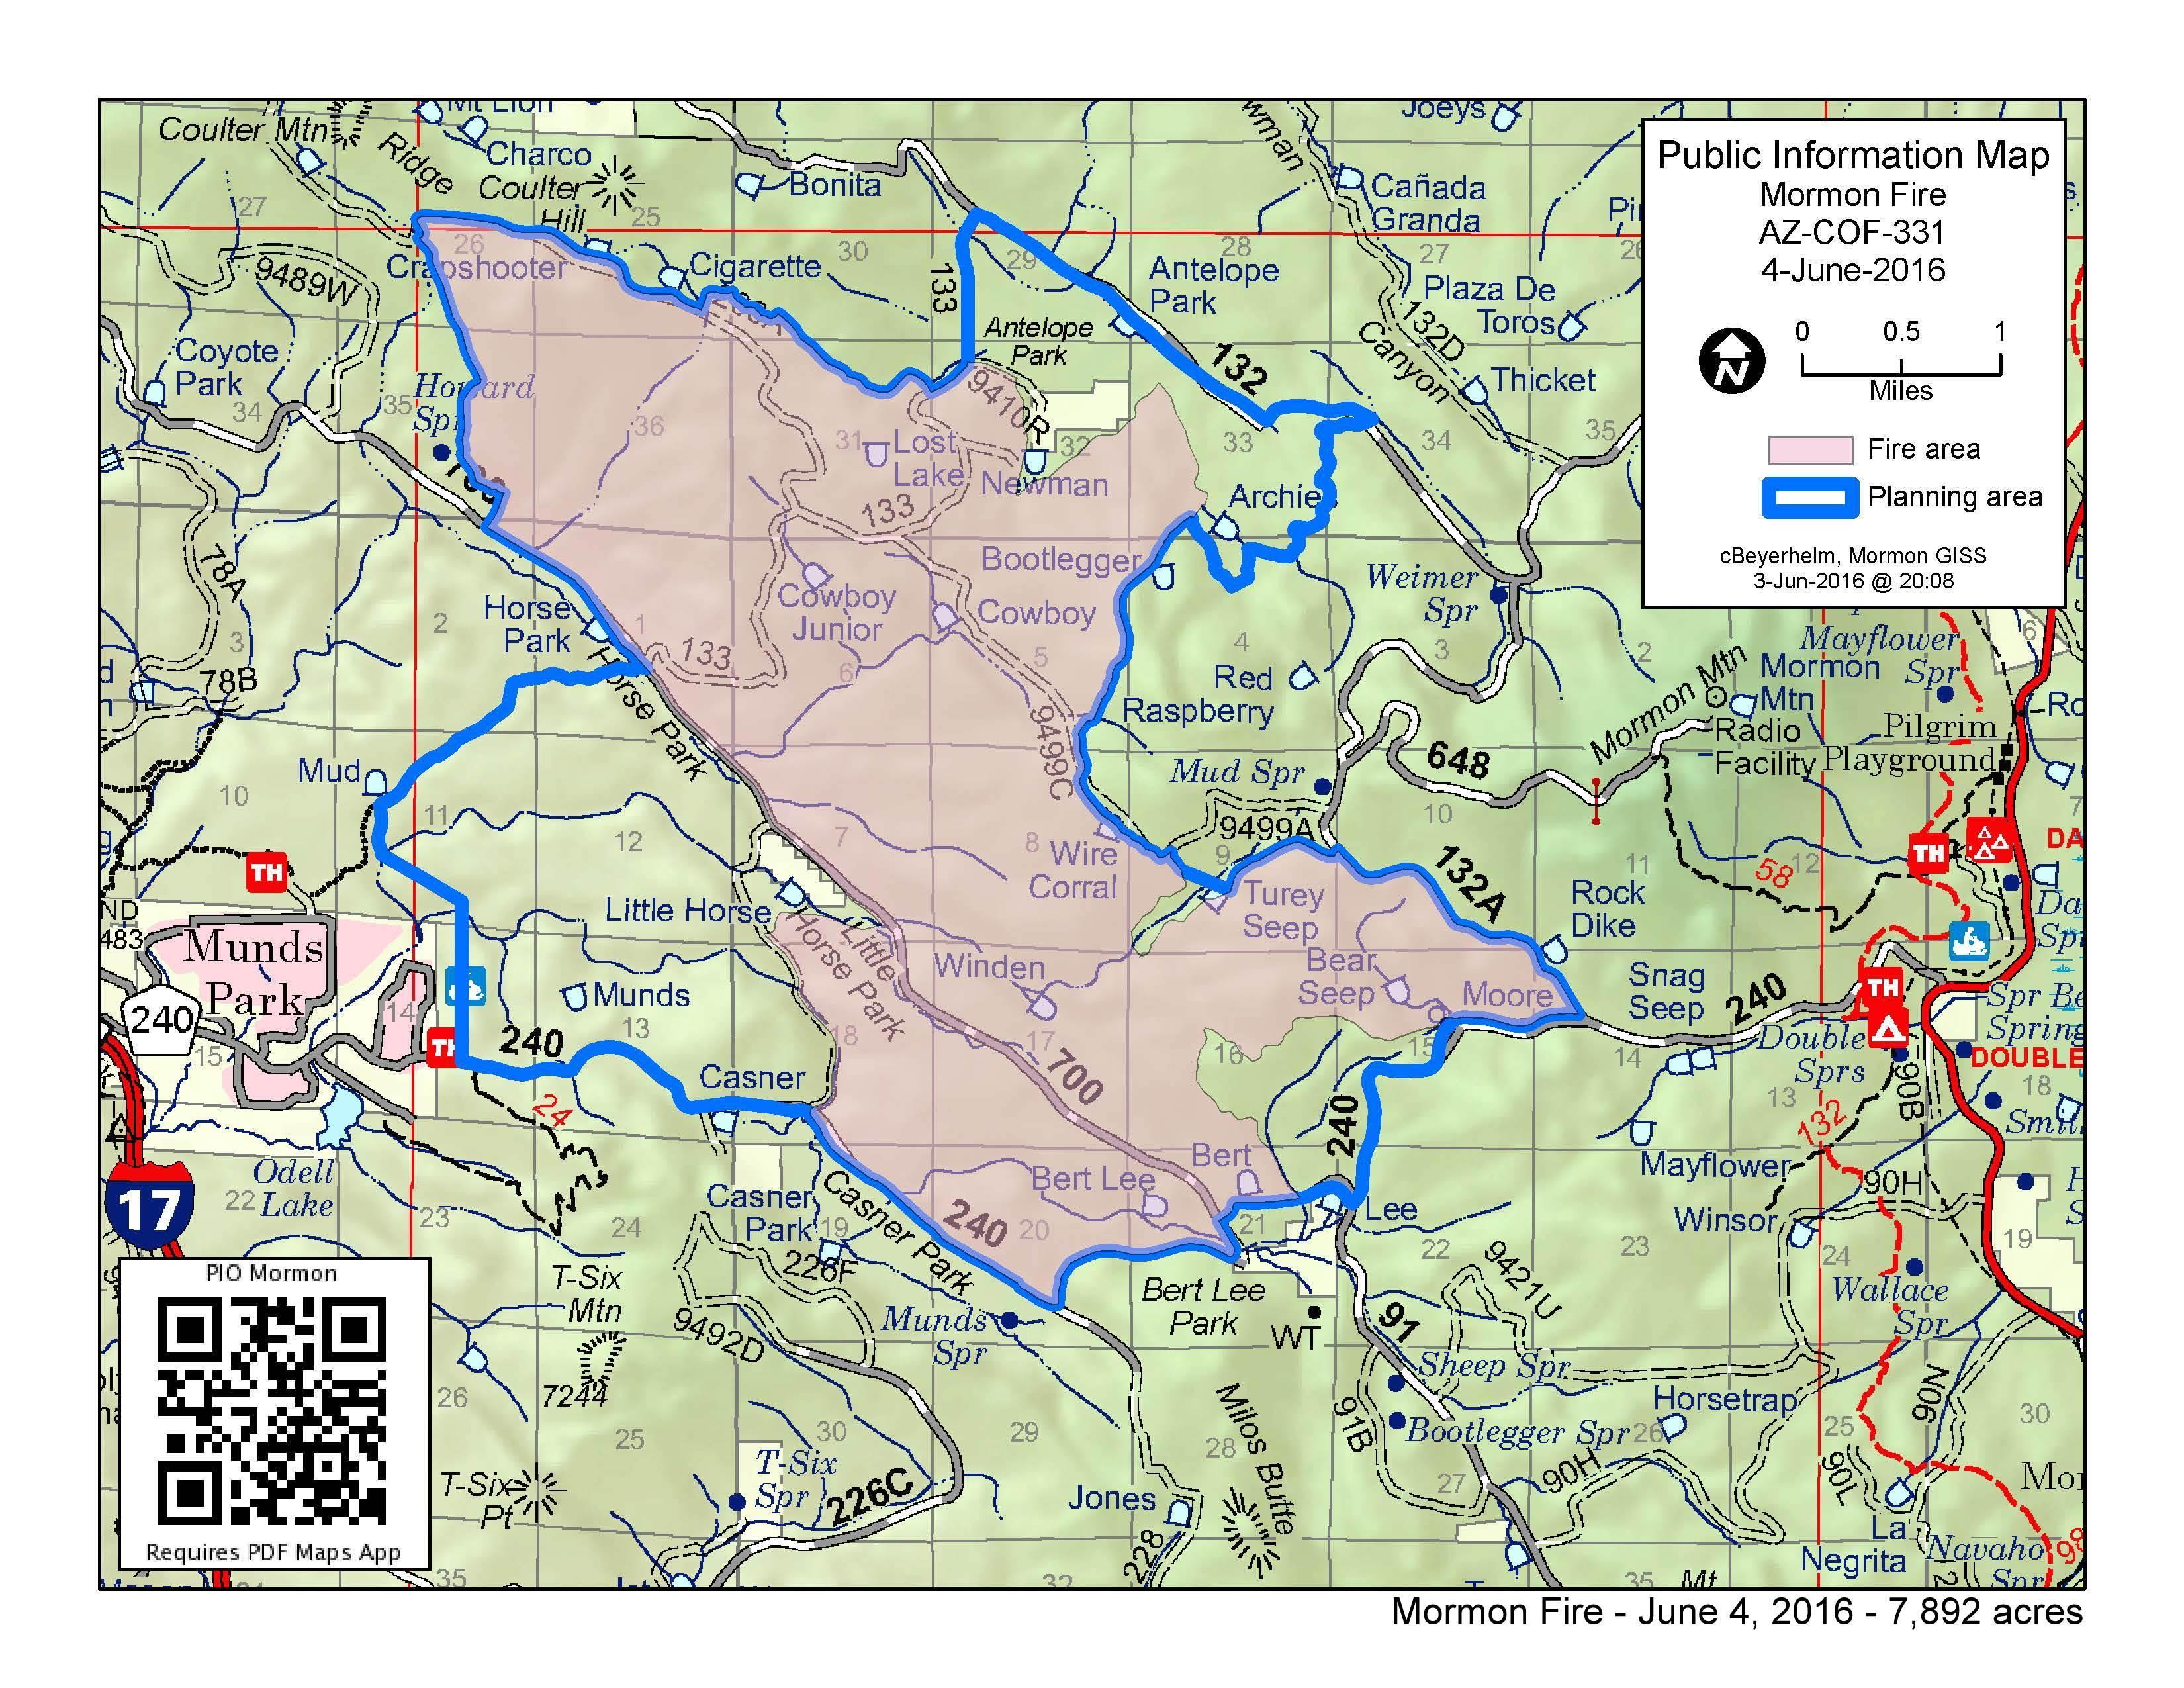 Forest Service Maps California Fresh Gatlinburg Fires Map Us Forest - California Forest Service Maps